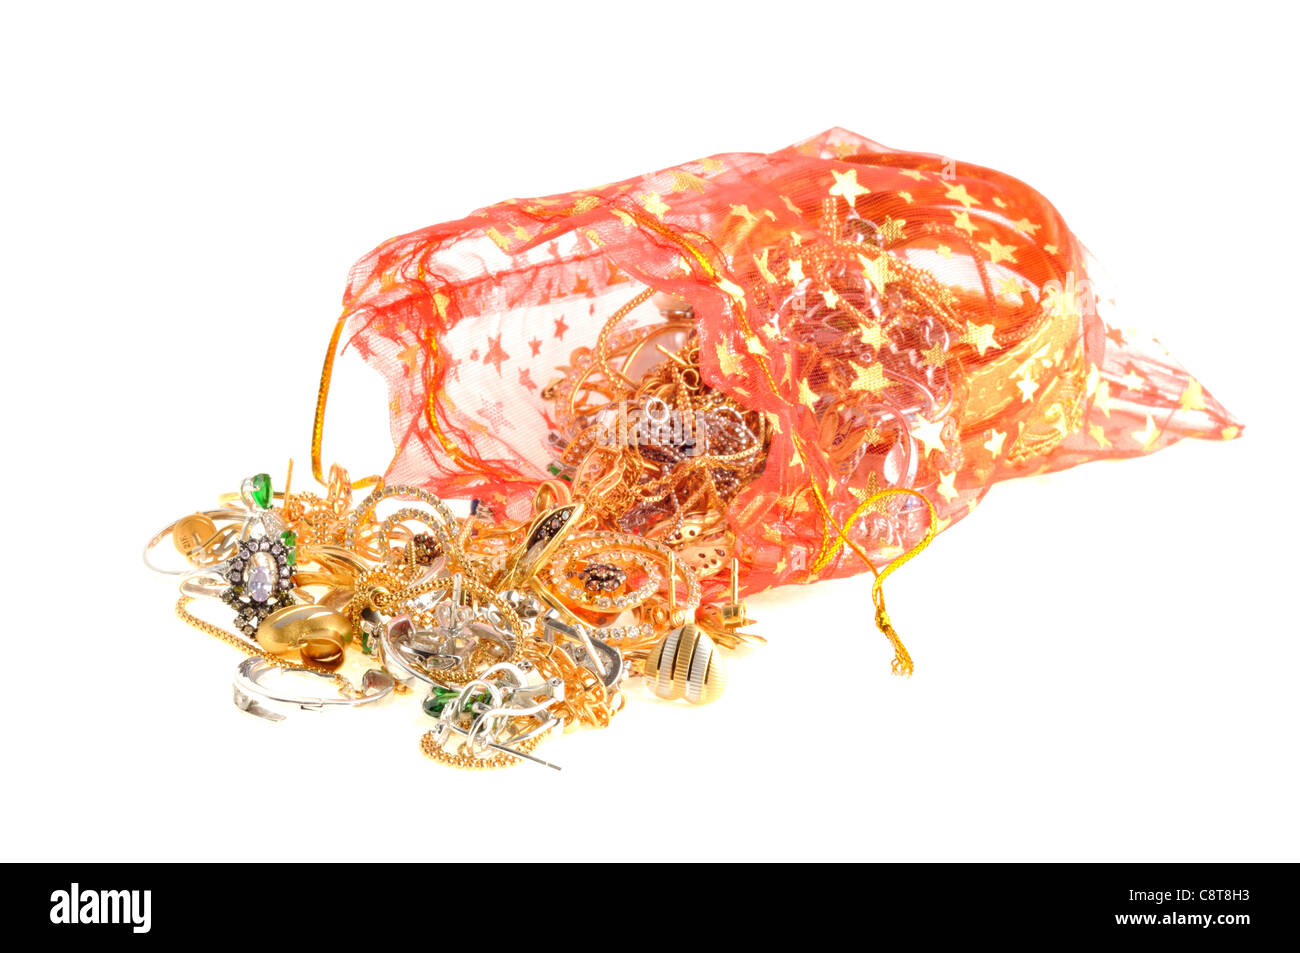 Full red bag of a gold jewelry on a white background - Stock Image